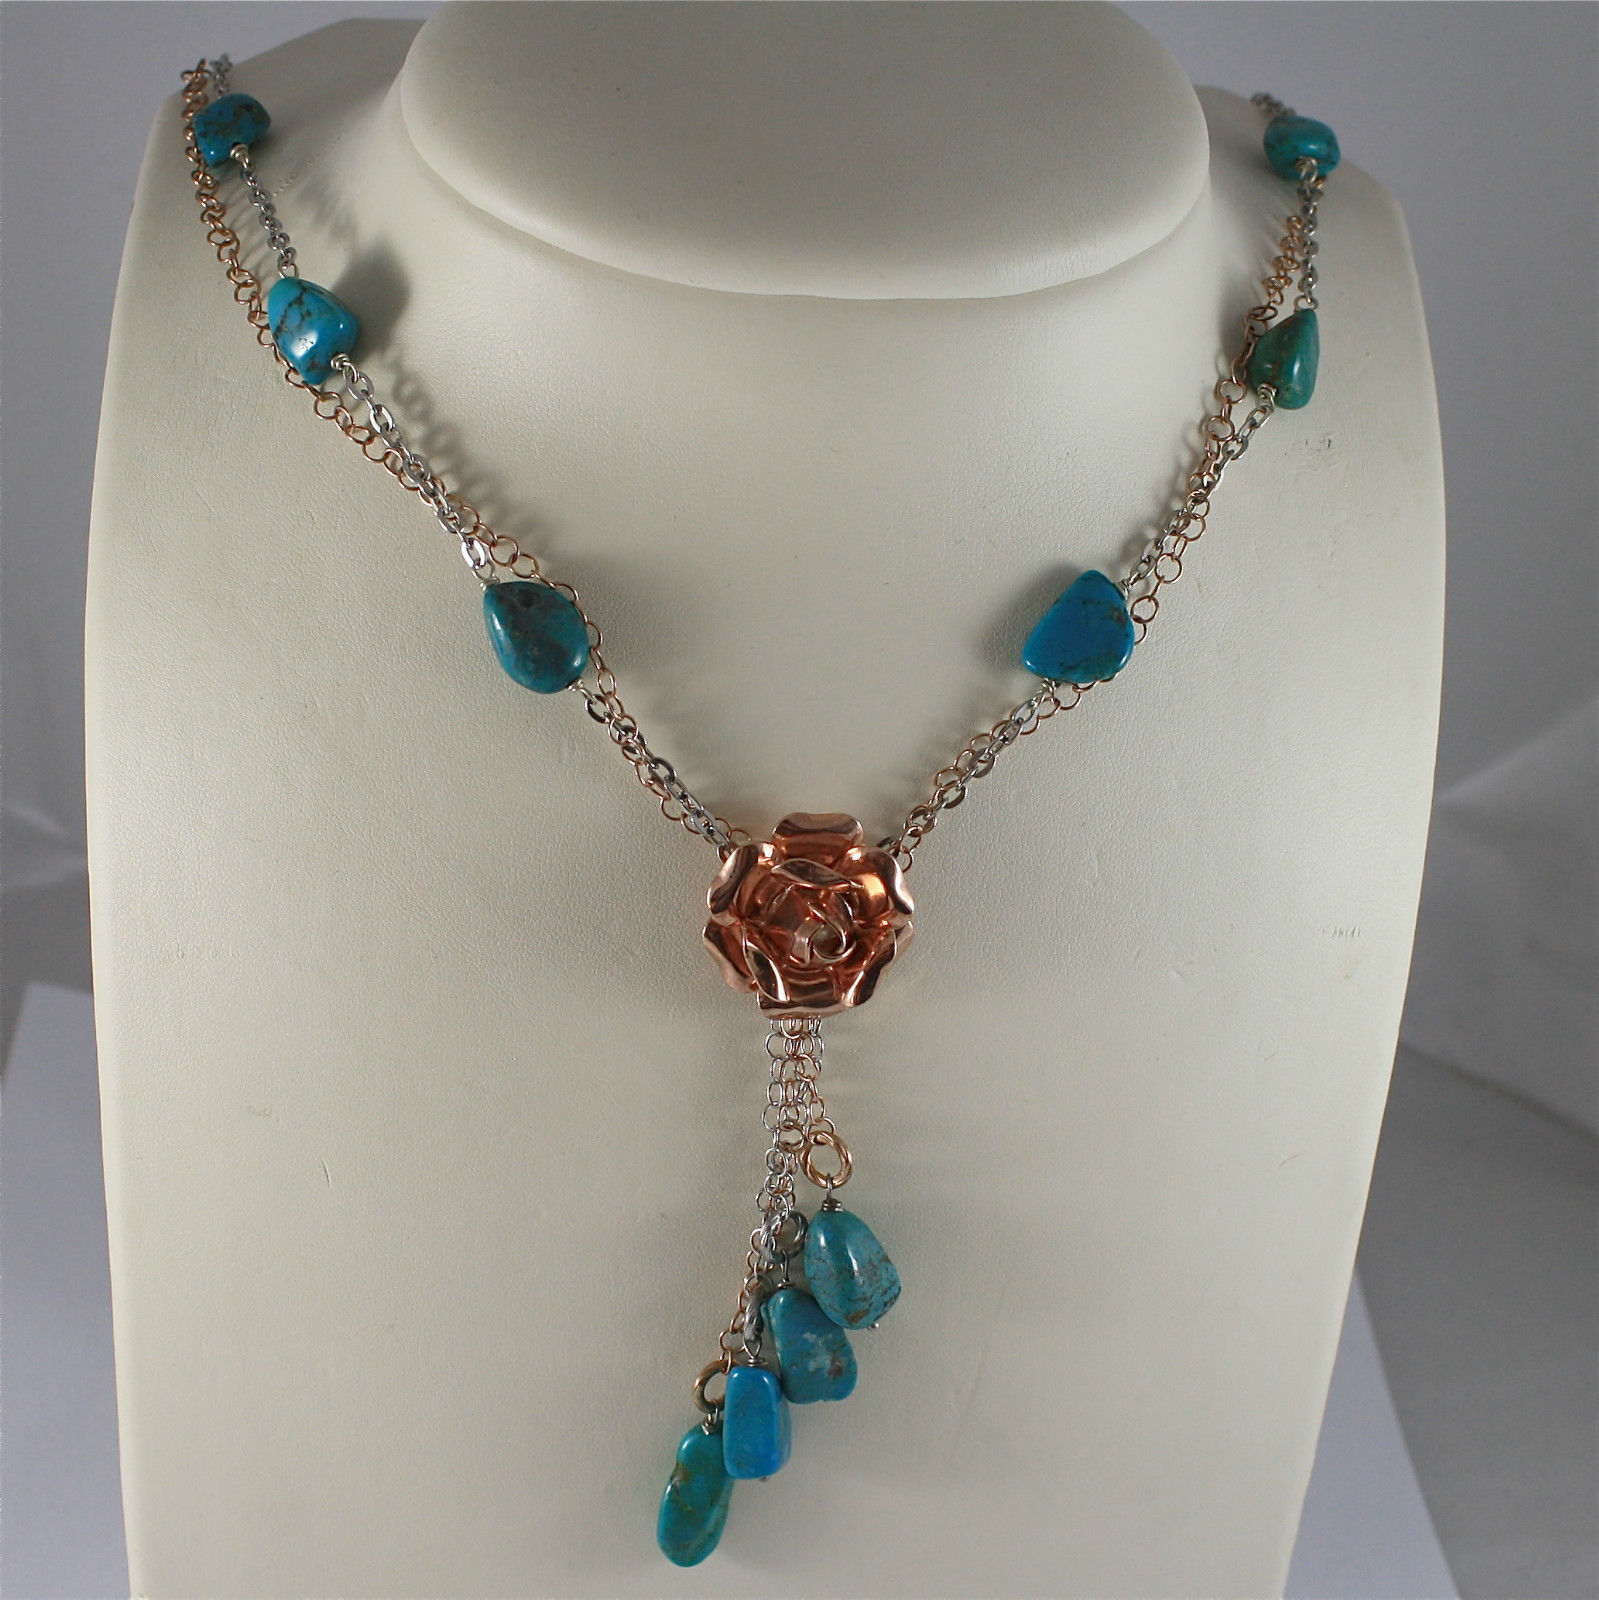 .925 RHODIUM SILVER NECKLACE, SCARF, CENTRAL ROSE, 4 PENDANT, NATURAL TURQUOISE.